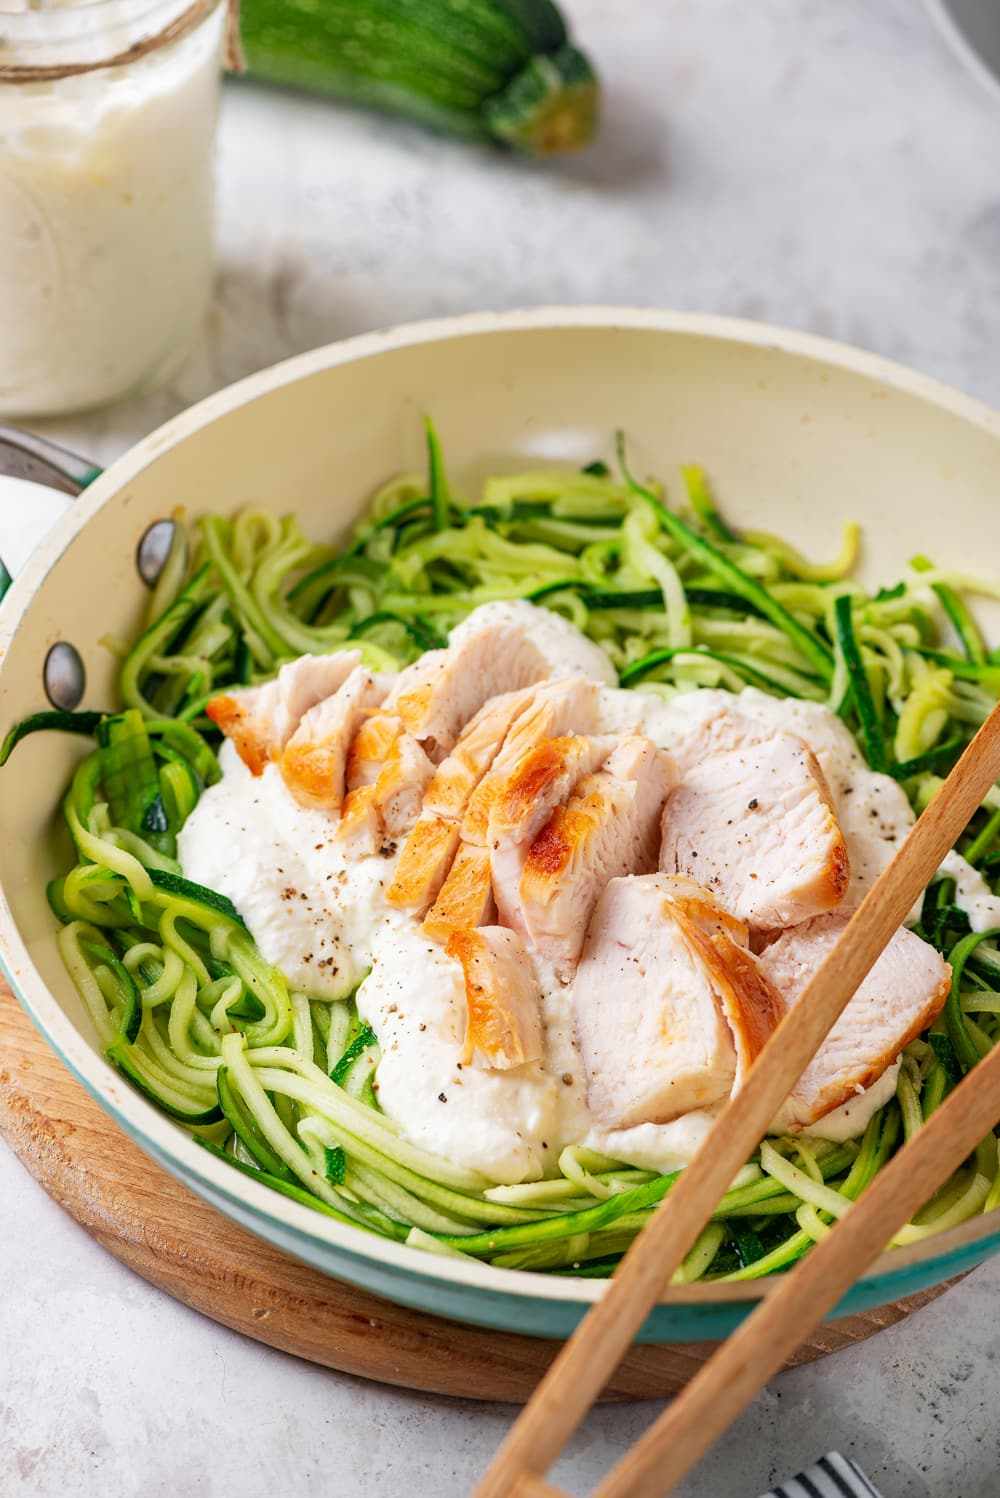 A bowl full of zucchini noodles, alfredo sauce, and cut up chicken.